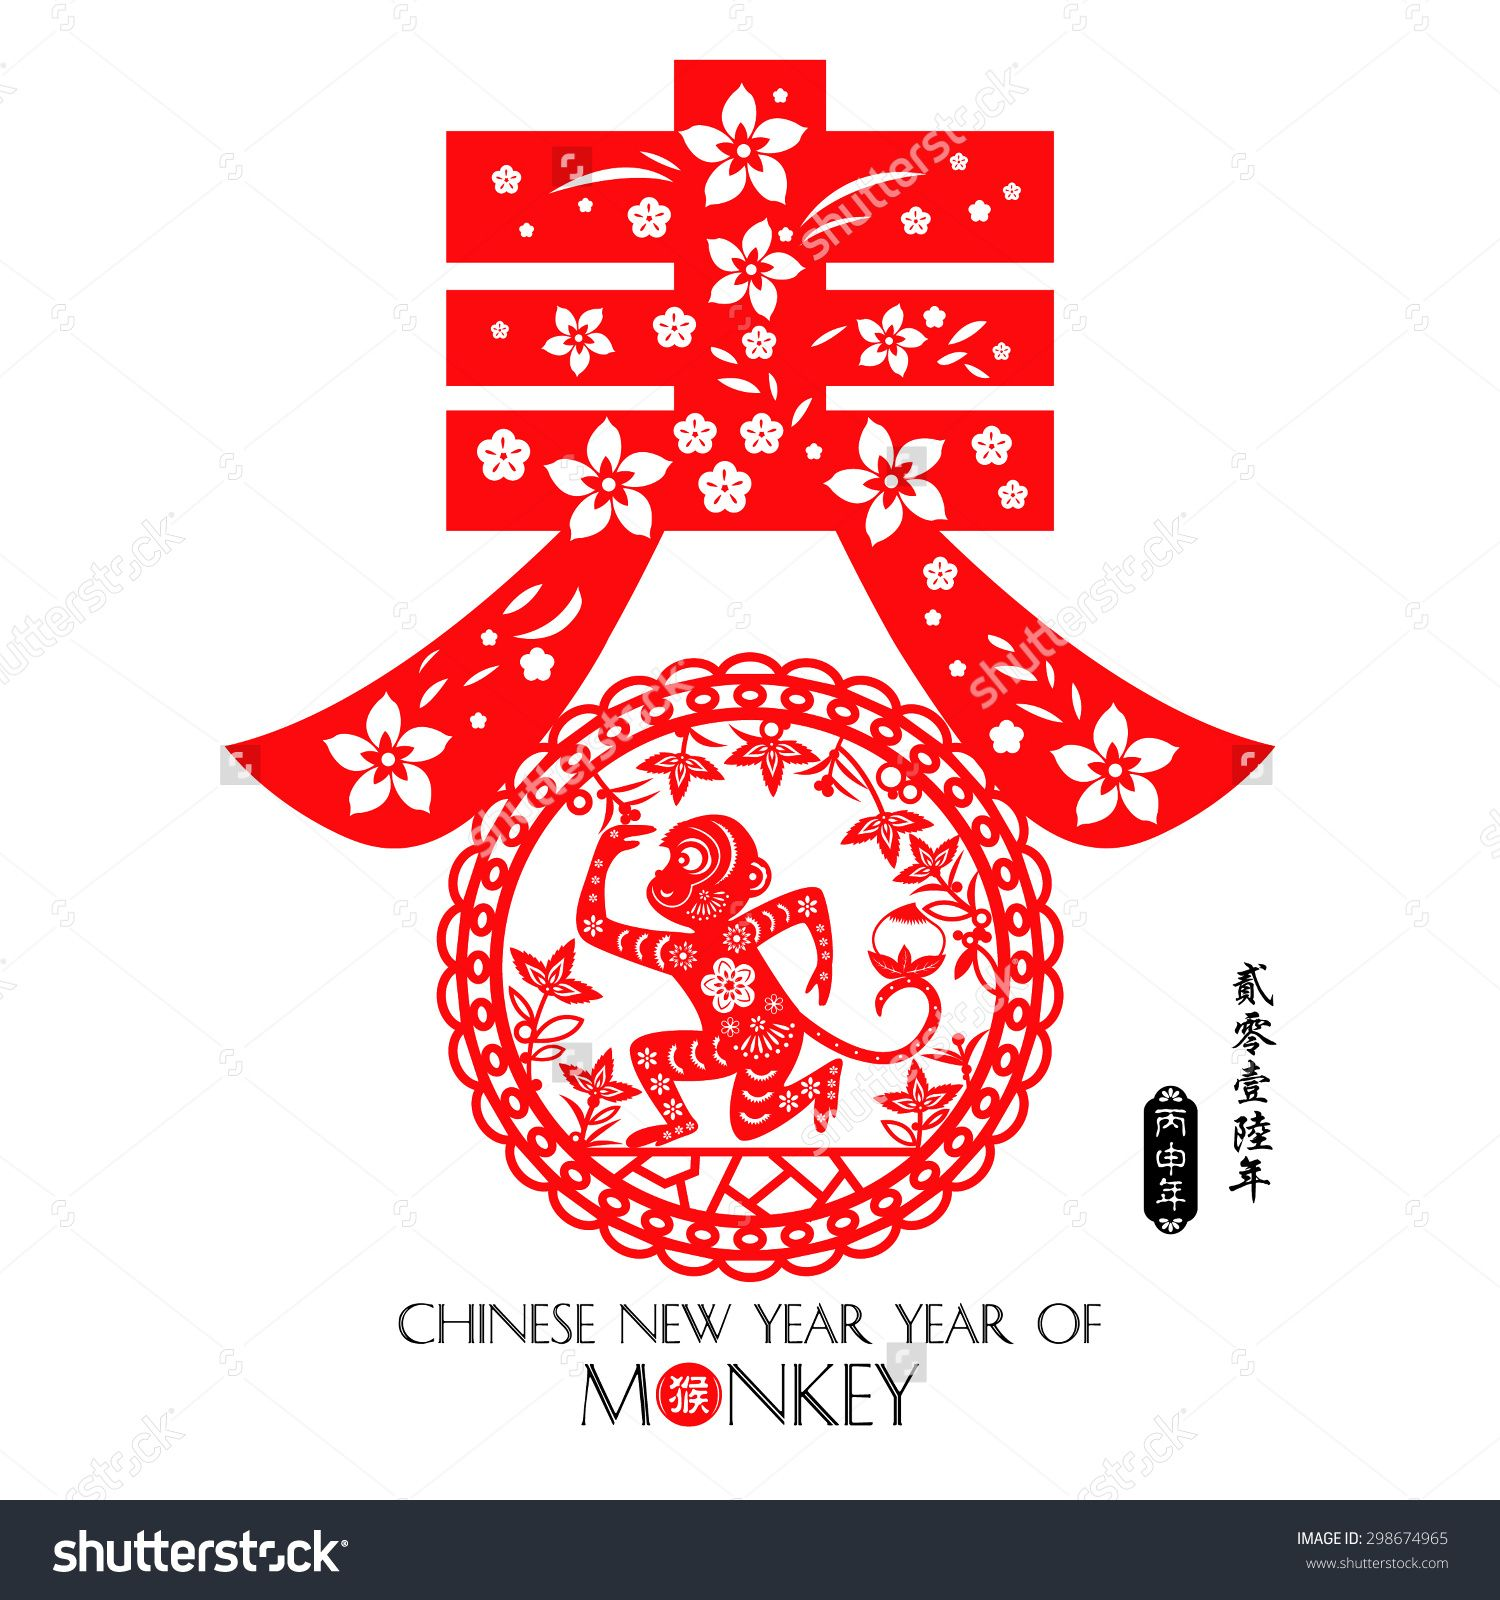 chinese year of monkey made by traditional chinese paper cut arts monkey year chinese zodiac symbol chinese small text translation 2016 lunar new year - Chinese New Year 2016 Zodiac